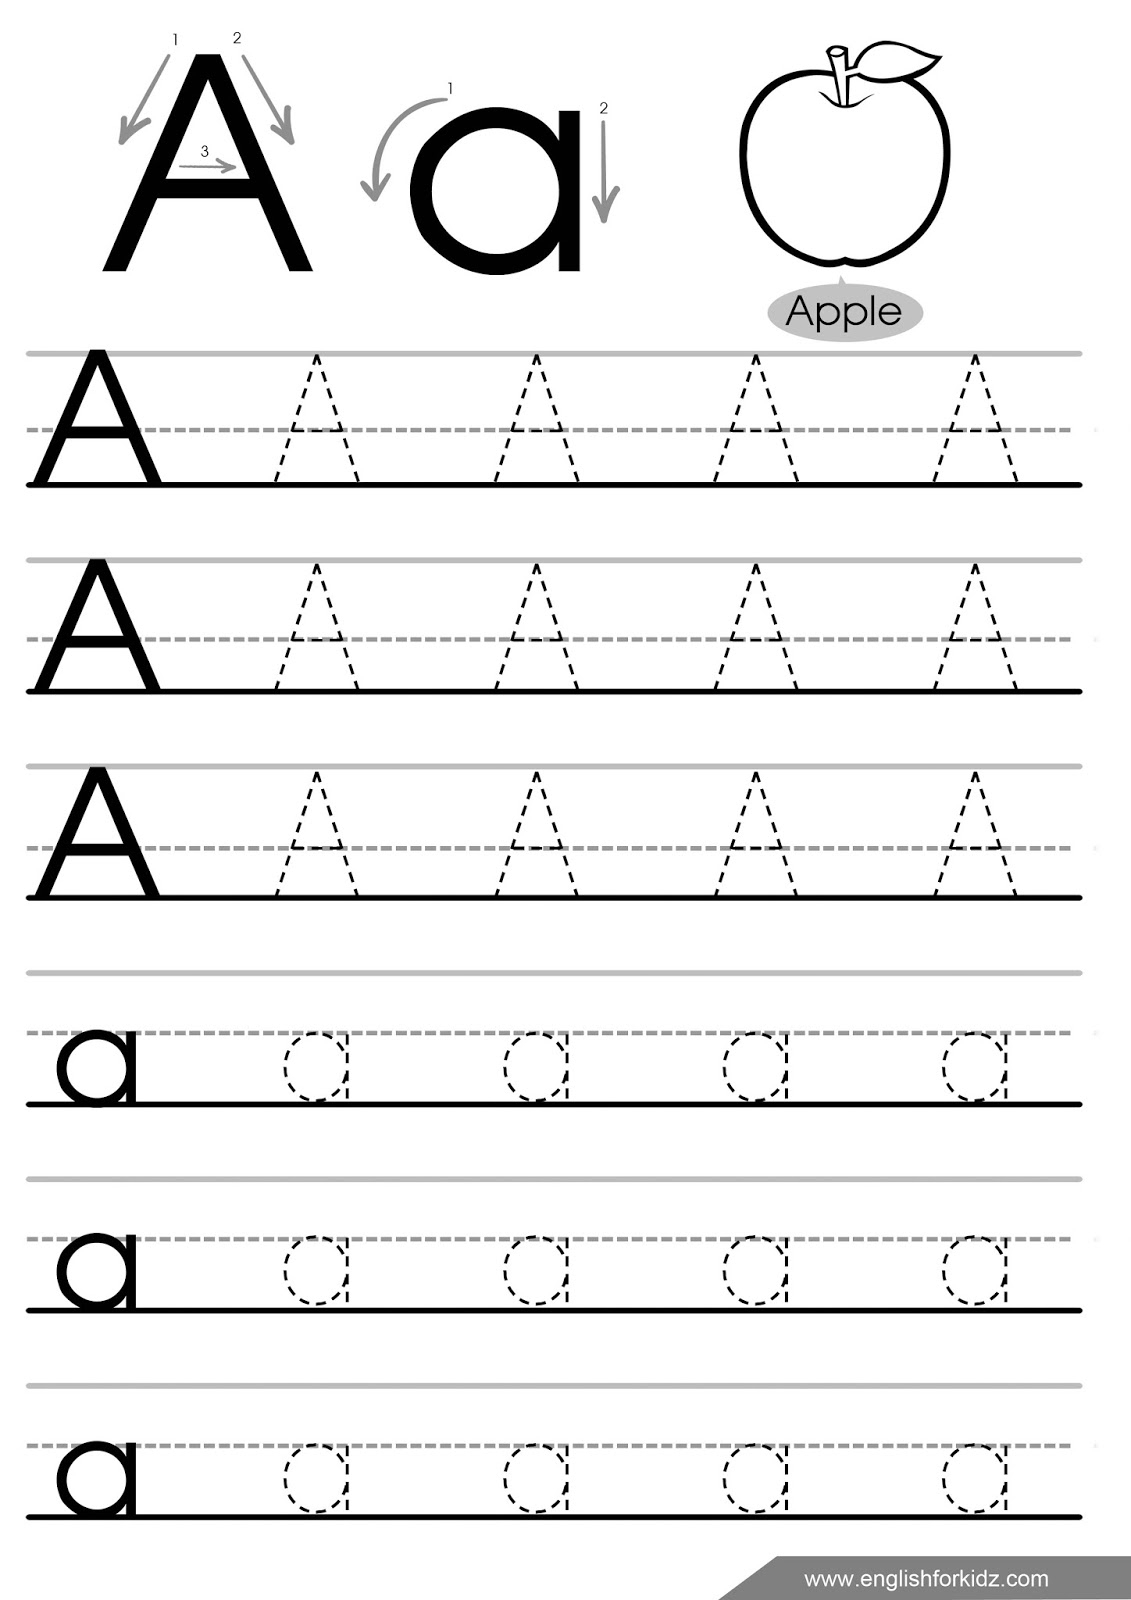 Preschool Tracing Worksheets Letters